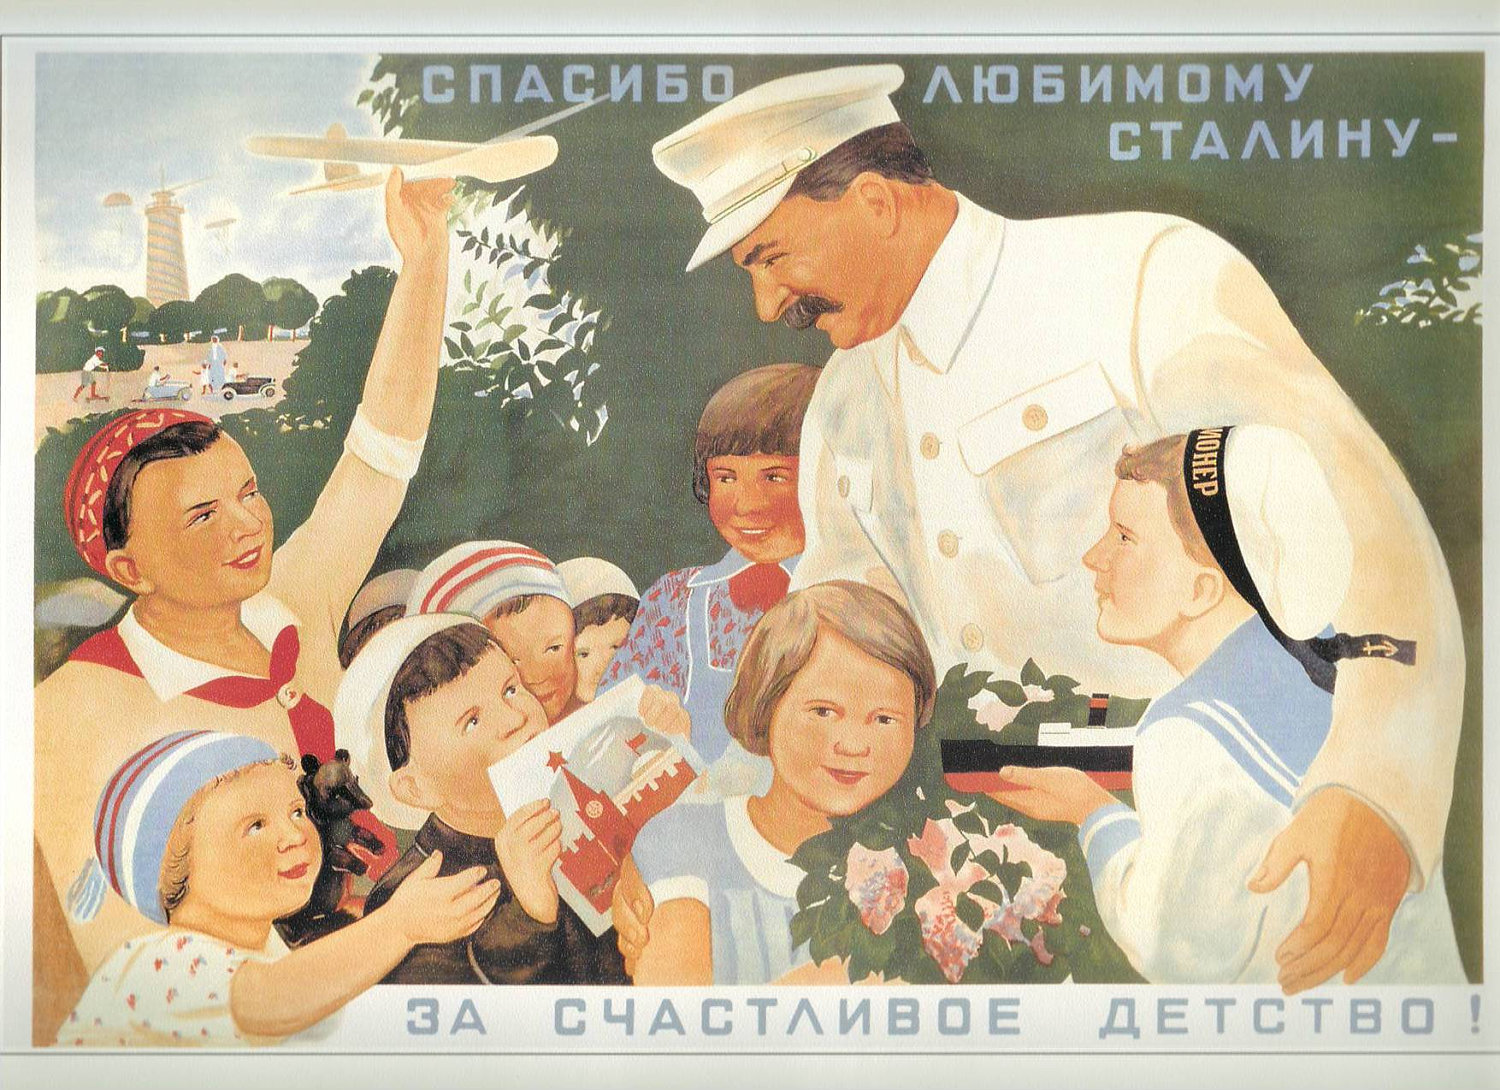 stalin and propaganda Despite the overwhelming excesses of stalin's regime, propaganda and formed public opinion made hitler out as the tyrant who didn't want to be against nazi's, after all statements that in any way suggested that stalin was a far worse criminal than hitler were met with charges of nazi sympathizer.